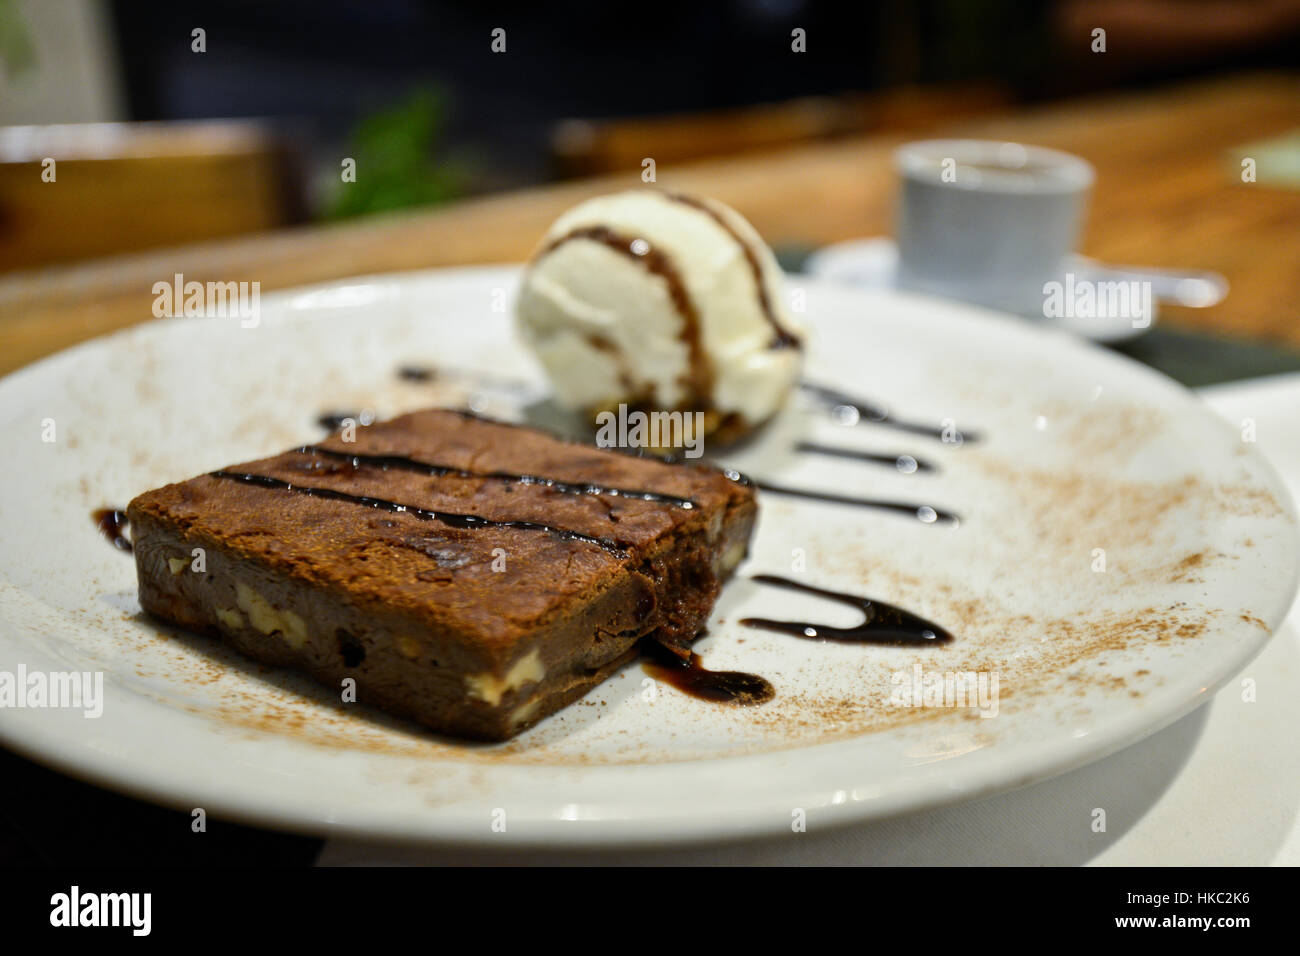 Brownie with vanilla ice cream and chocolate syrup - Stock Image